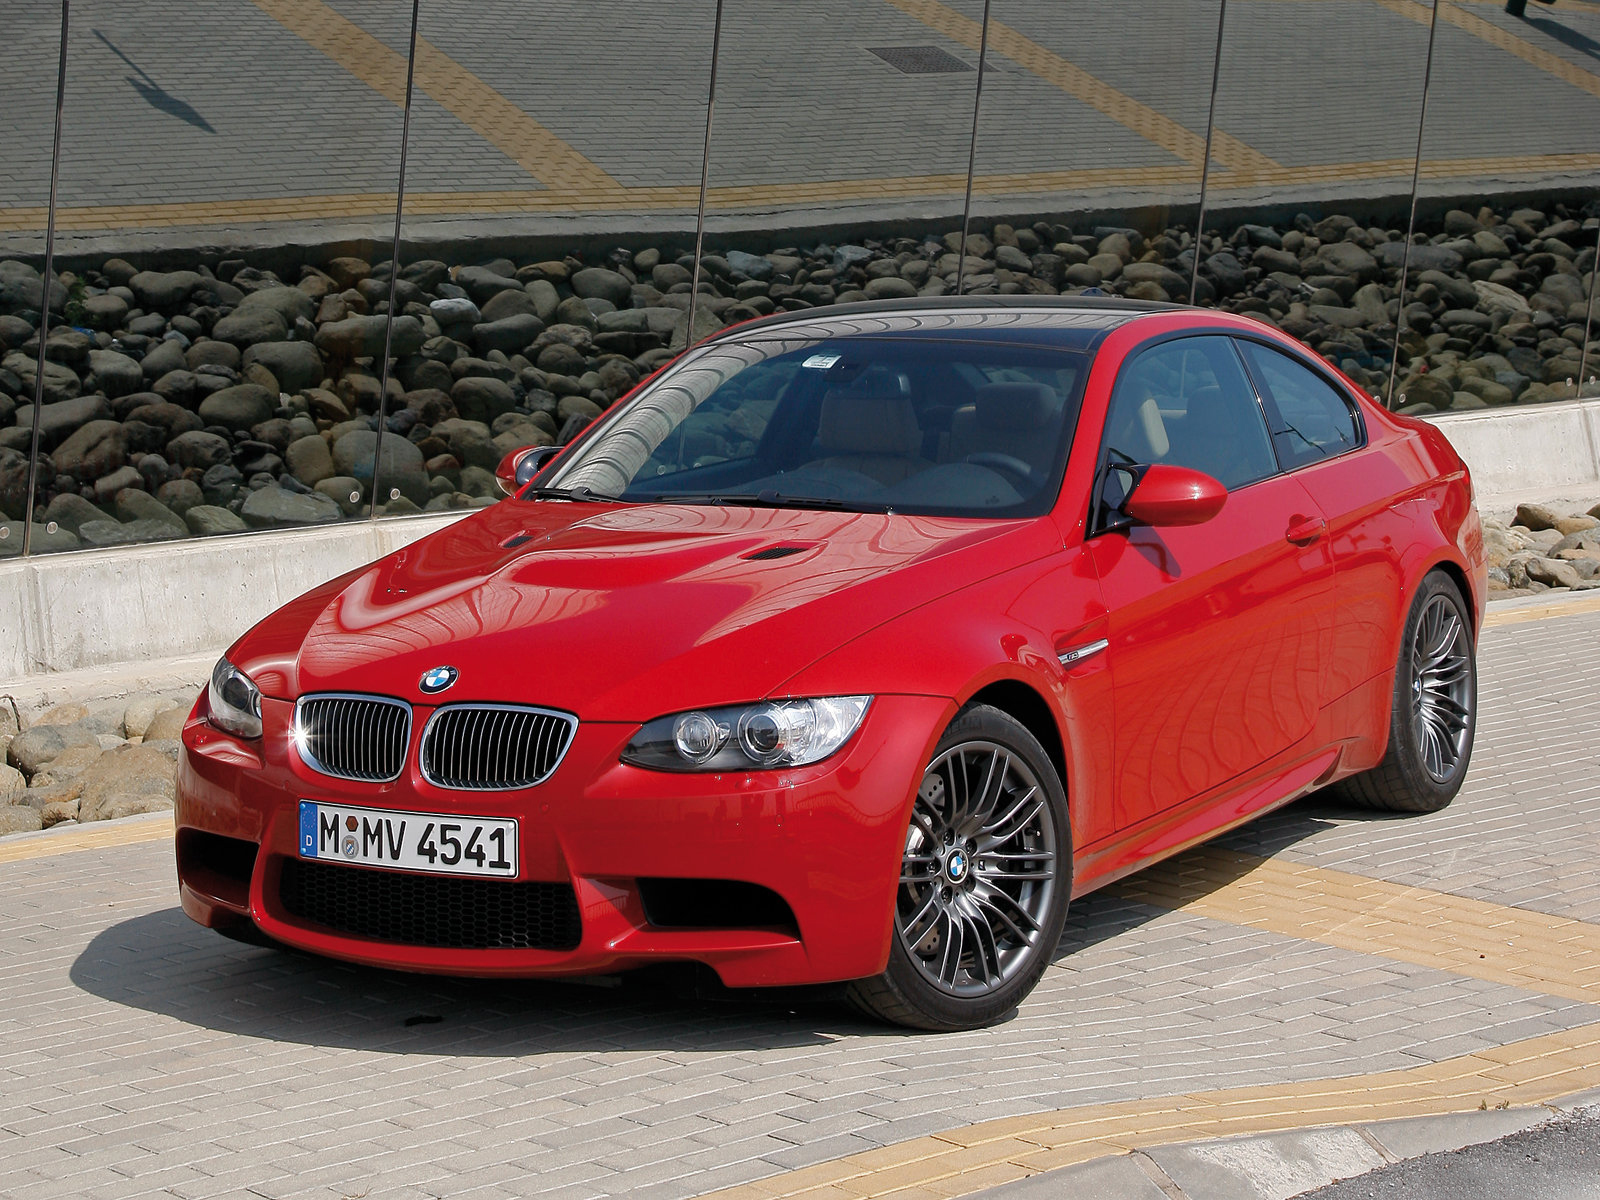 2008 bmw m3 coup front view